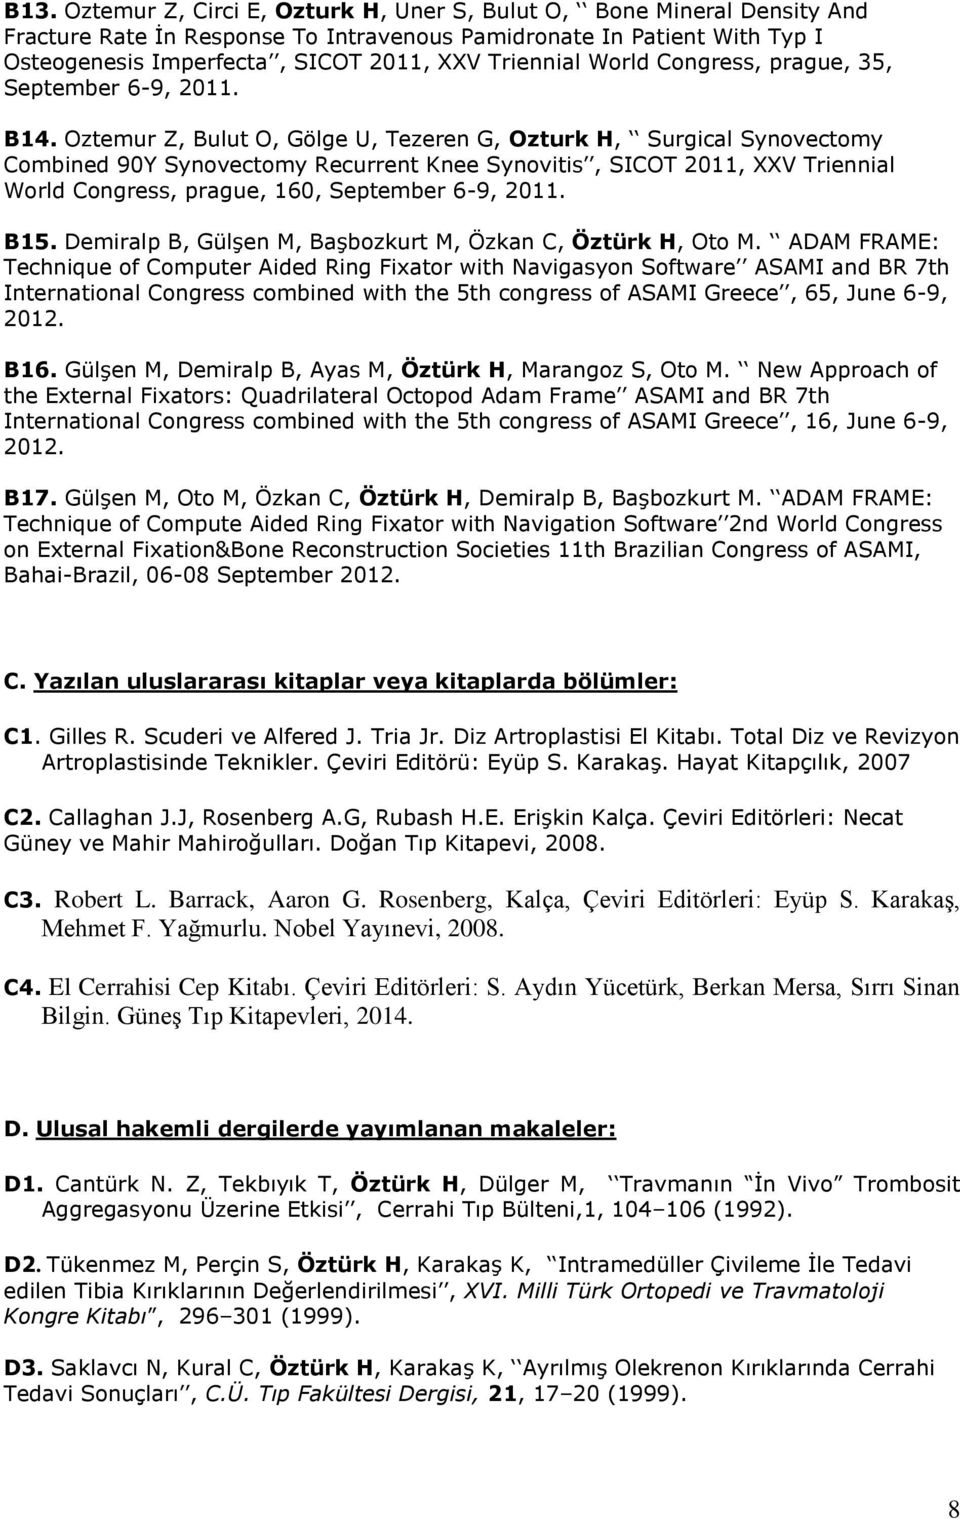 Oztemur Z, Bulut O, Gölge U, Tezeren G, Ozturk H, Surgical Synovectomy Combined 90Y Synovectomy Recurrent Knee Synovitis, SICOT 2011, XXV Triennial World Congress, prague, 160, September 6-9, 2011.